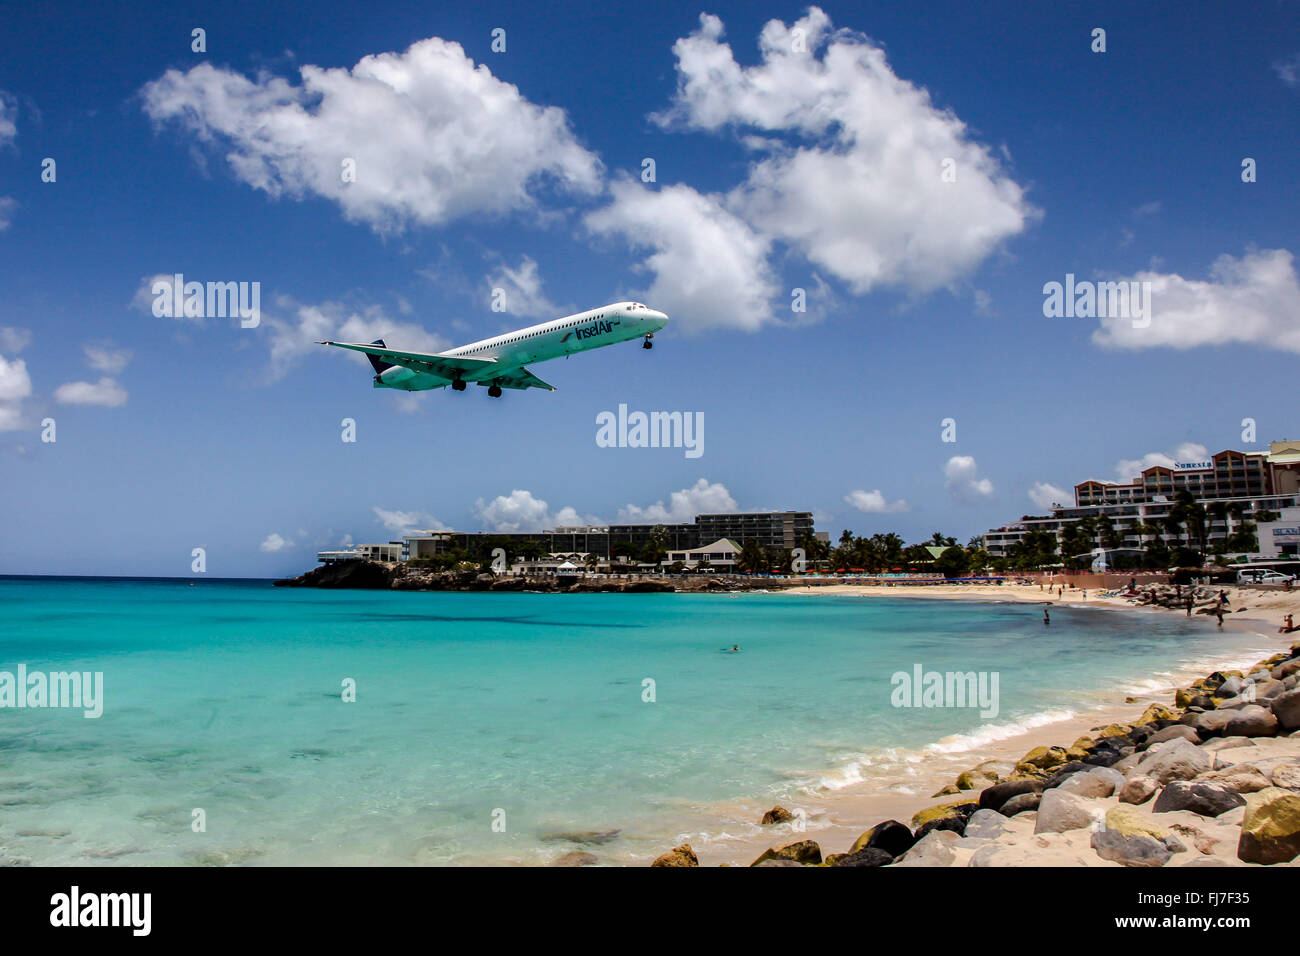 Airplane Insel Air is landing on Princess Juliana International Airport at St.Martin over Maho Bye Beach - Stock Image